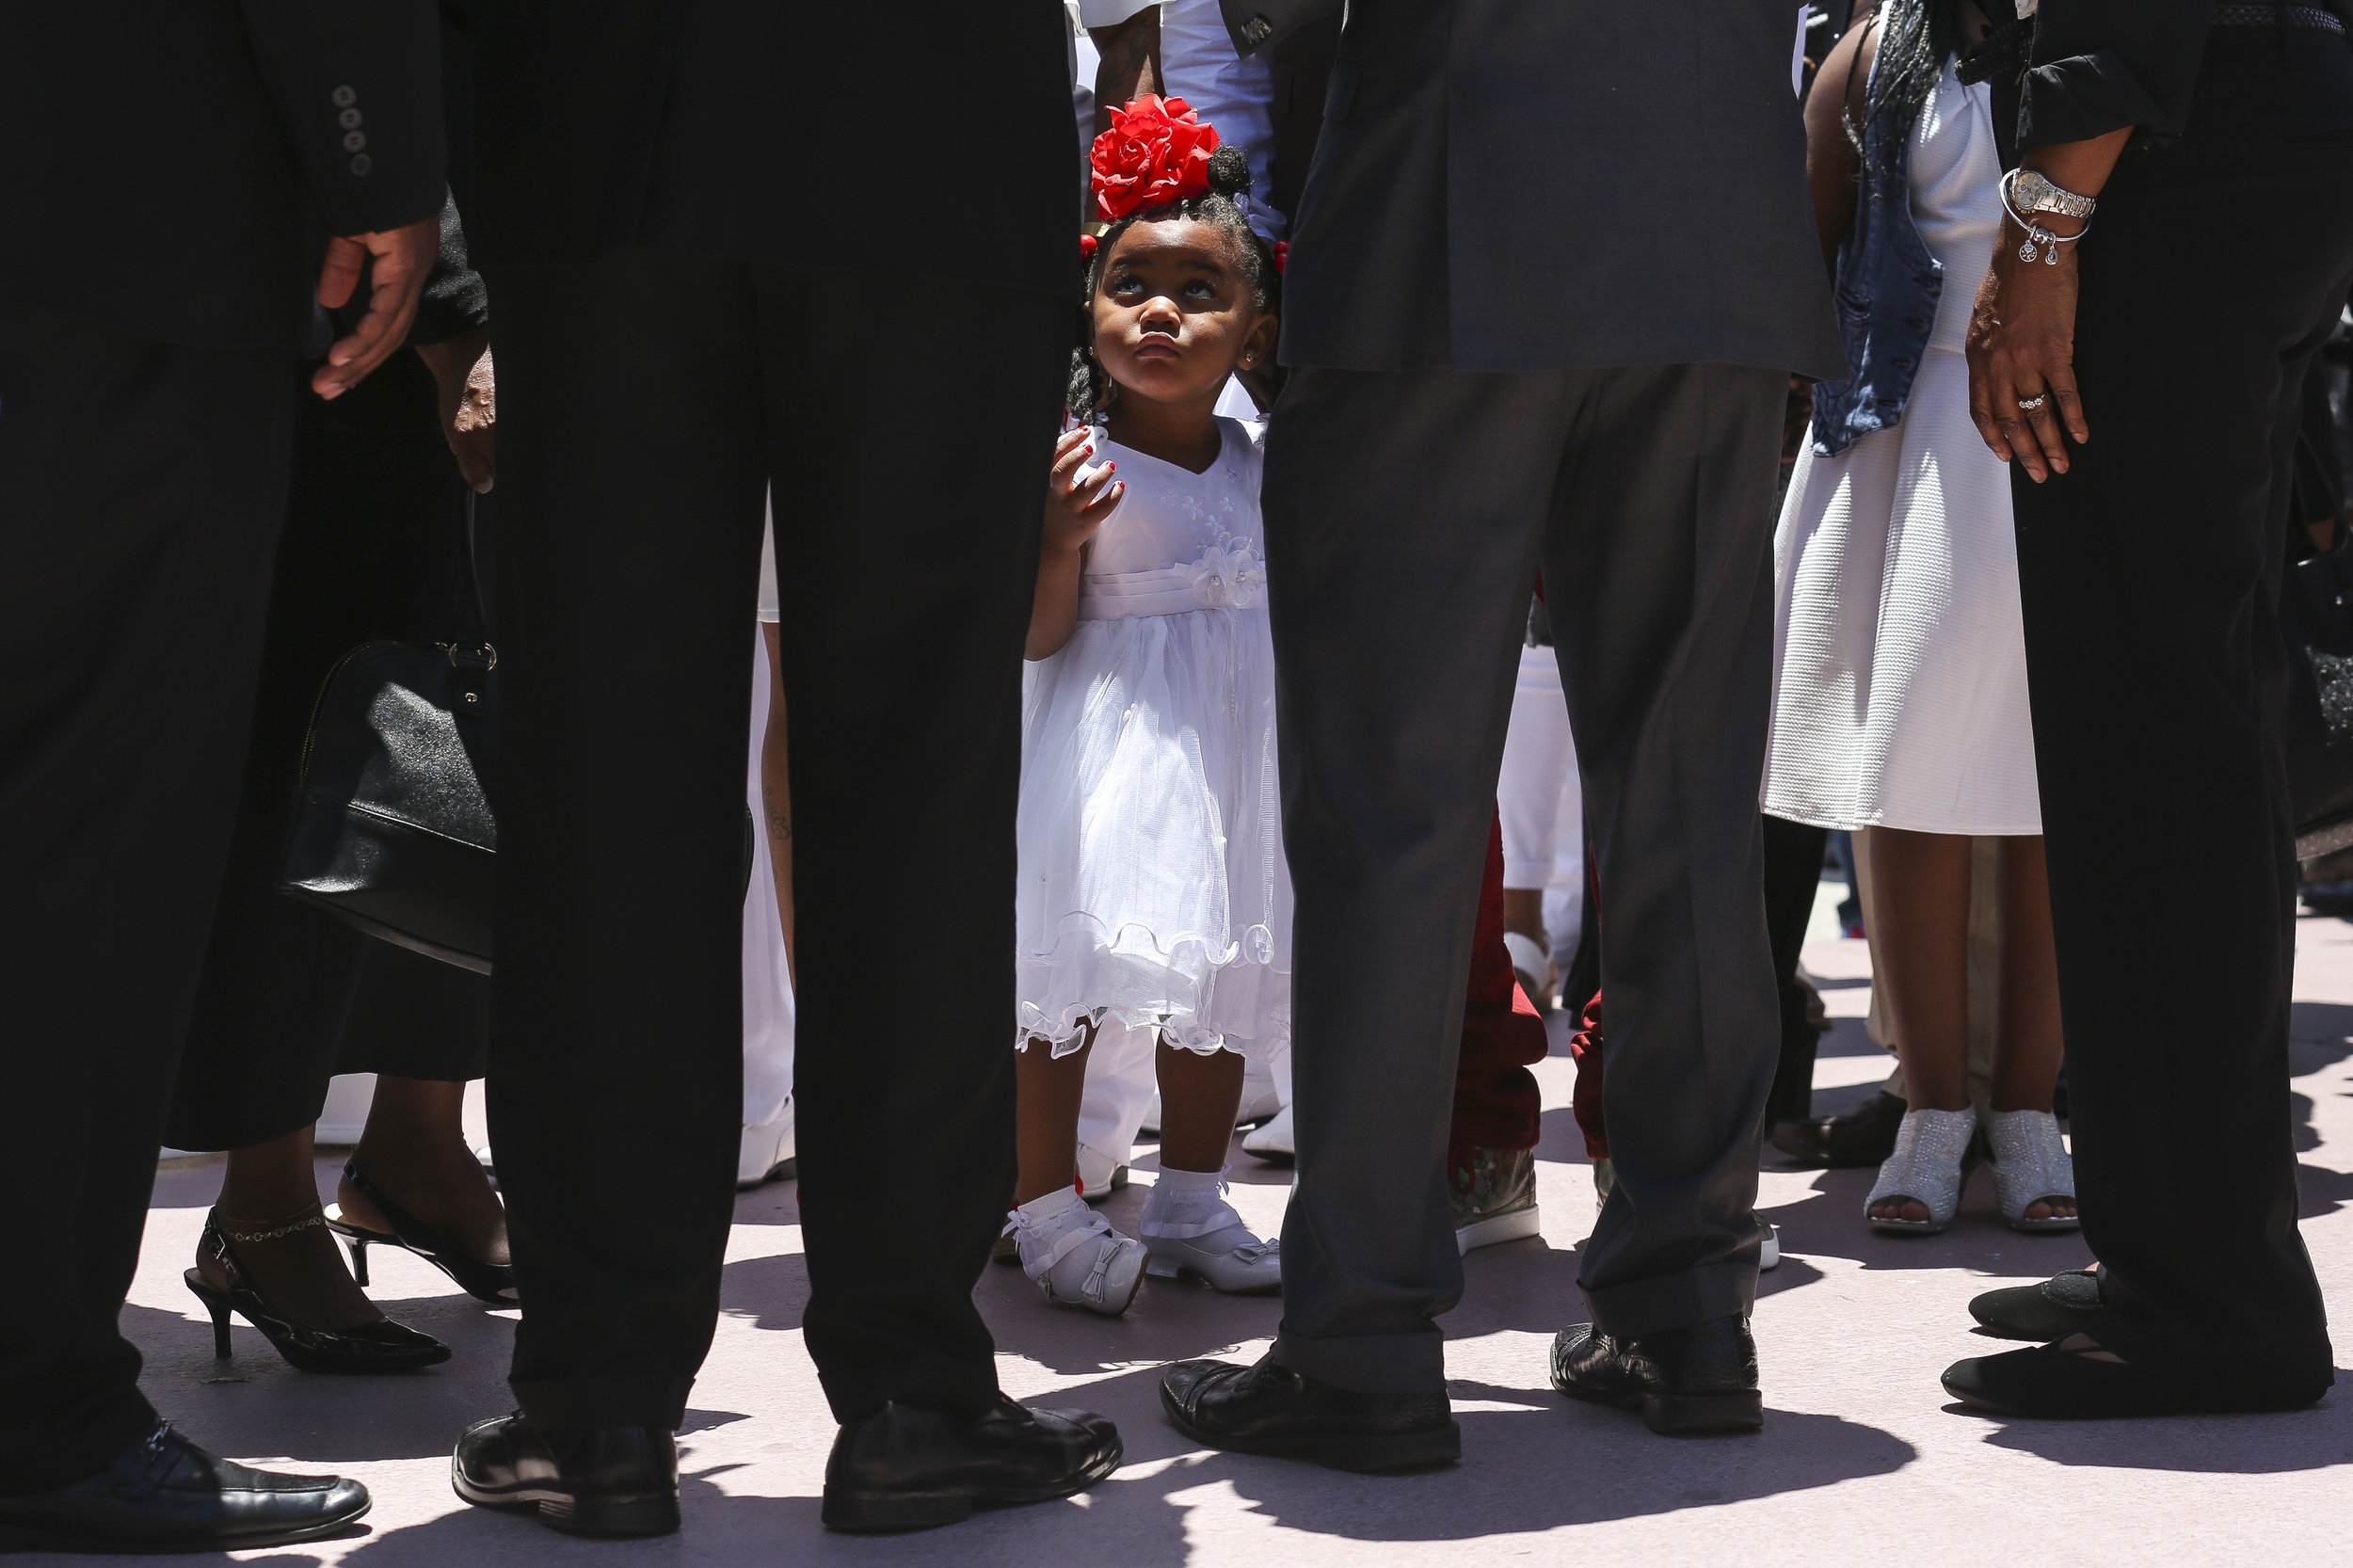 Tedrika King, 2, waits outside before the start of a funeral service for her 13-year-old sister, Tedra King, at Second Baptist Church in Richmond Heights on Saturday, May 6, 2017. Tedra King was a victim to gun violence after being accidentally shot by her 17-year-old brother, Martaevious Santiago.